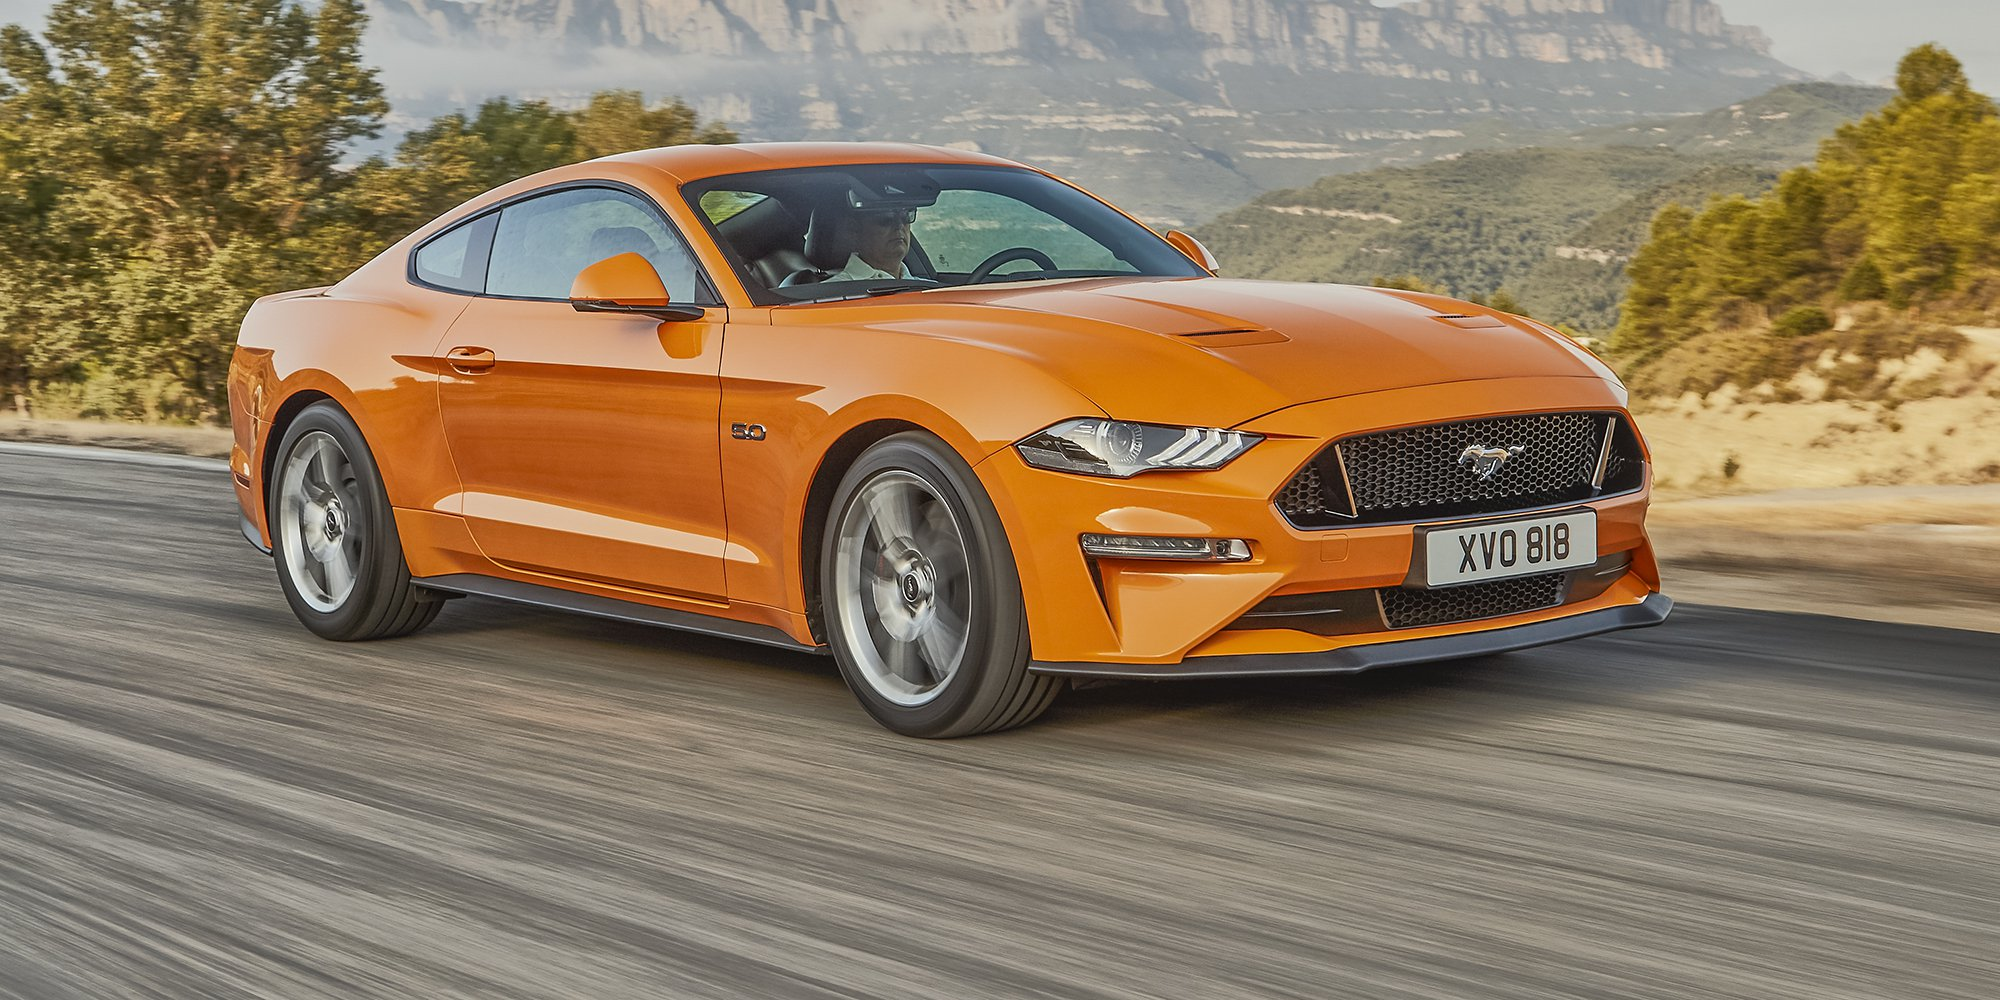 2018 Ford Mustang Pricing And Specs Update Caradvice